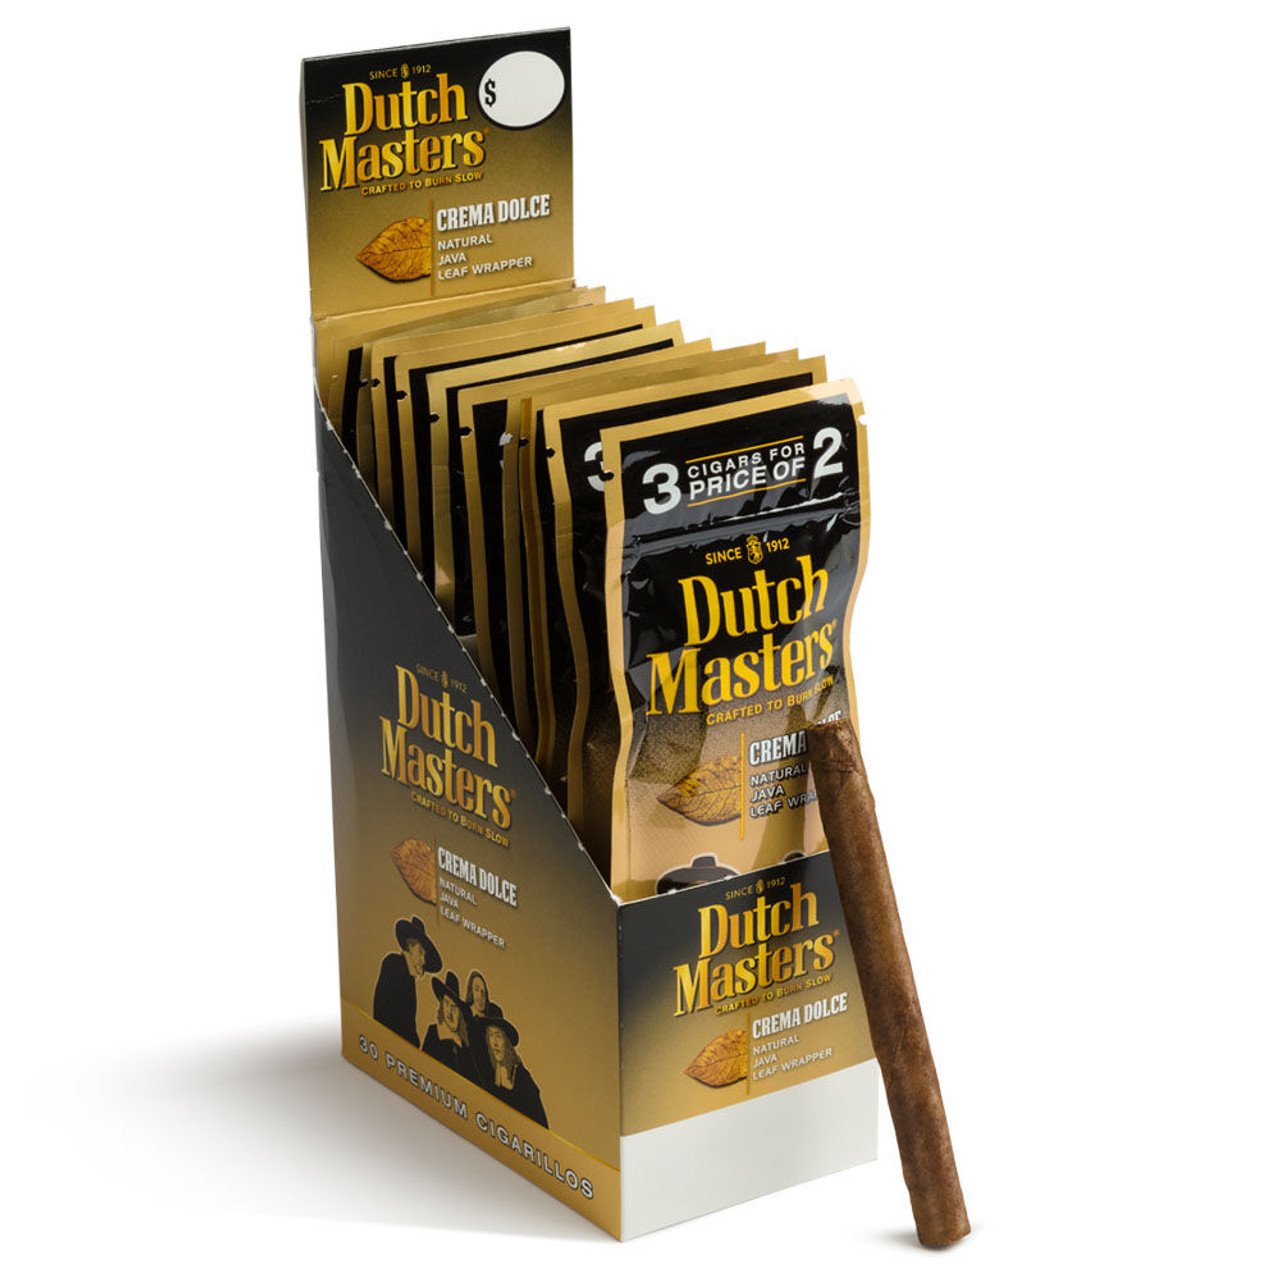 Dutch Masters Cigarillos 3pk Foil Crema Dolce Cigars - 4.5 x 28 (20 packs of 3 (60 total))